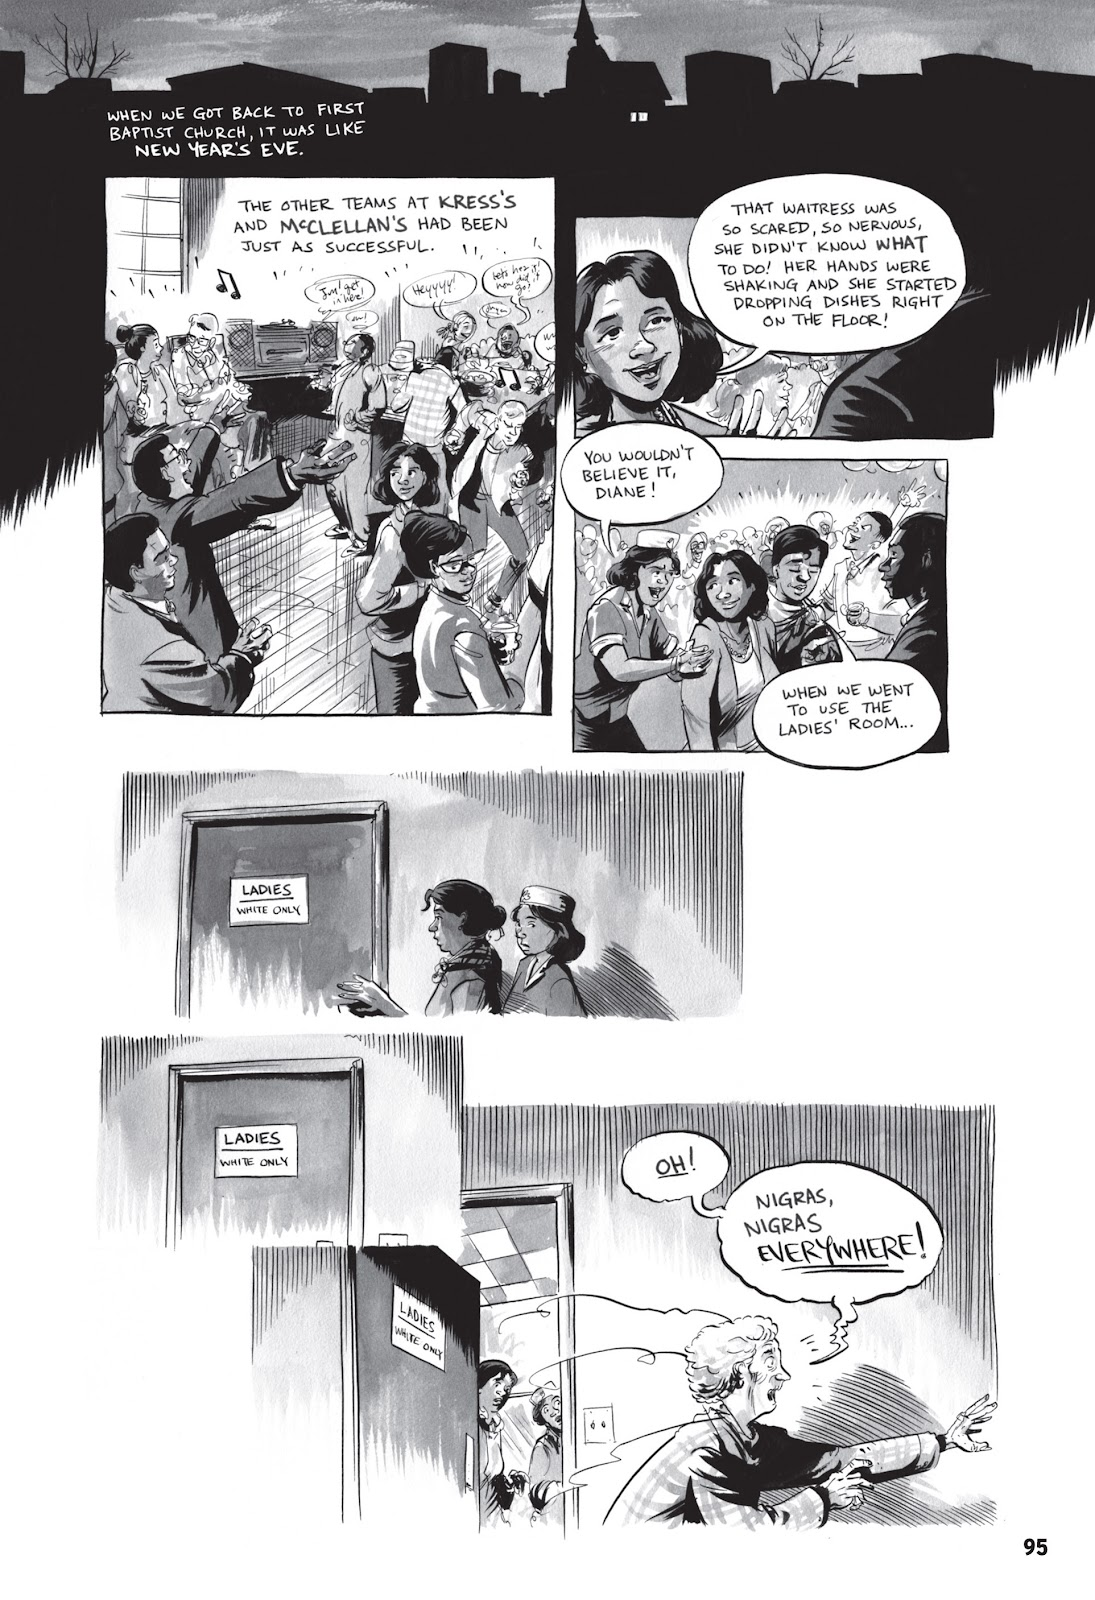 March 1 Page 92